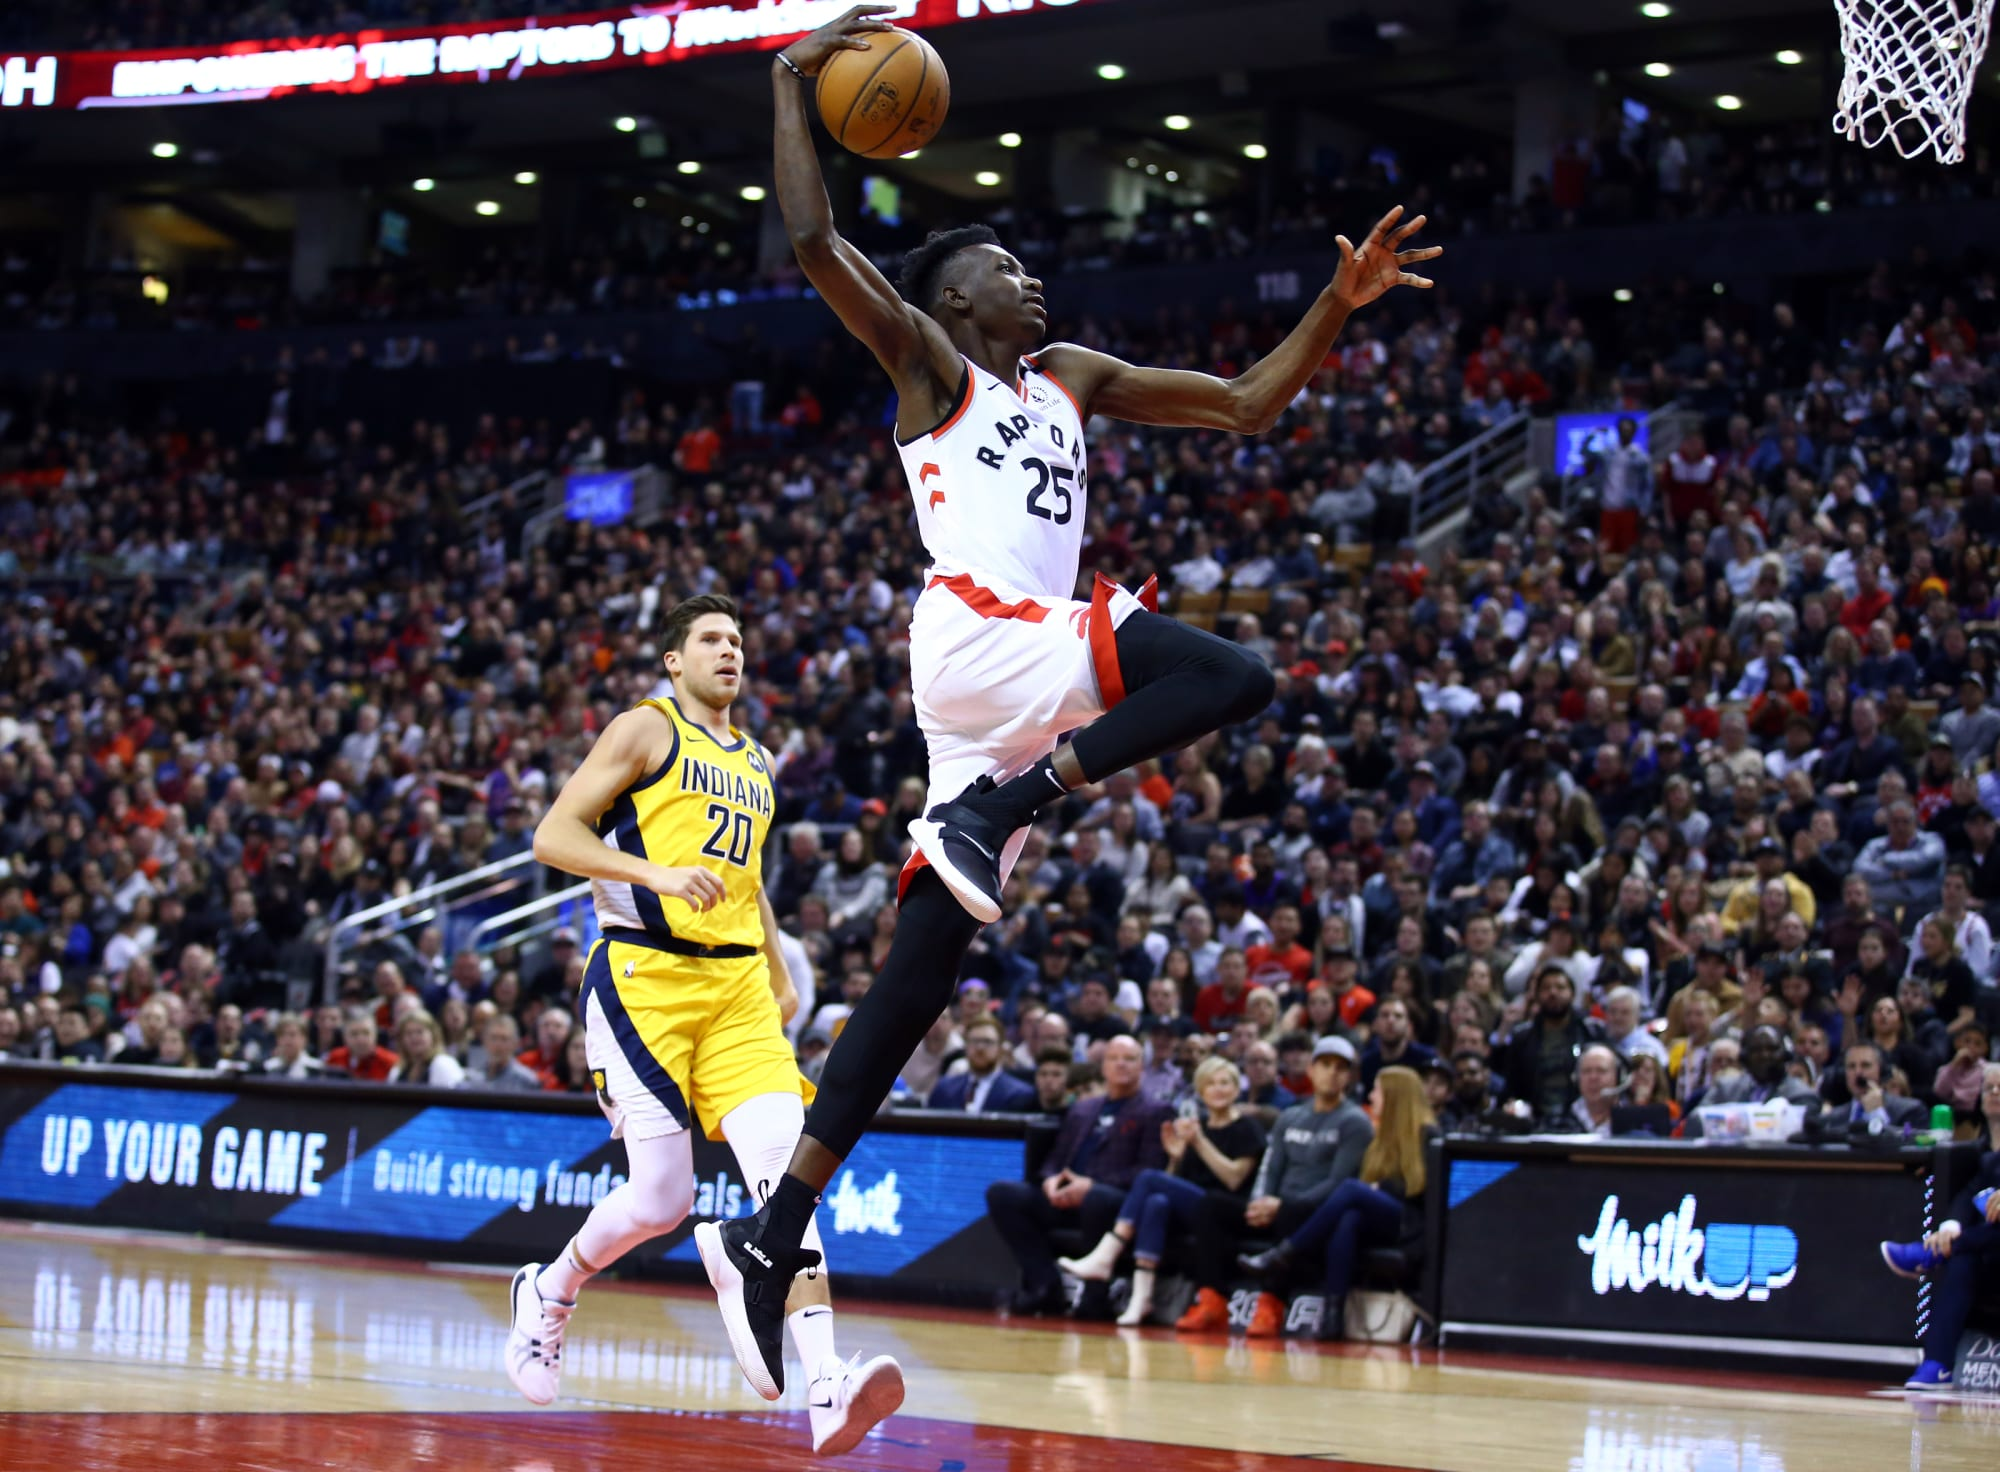 Raptors: Chris Boucher's breakout season makes him one of the NBA's top Canadian players